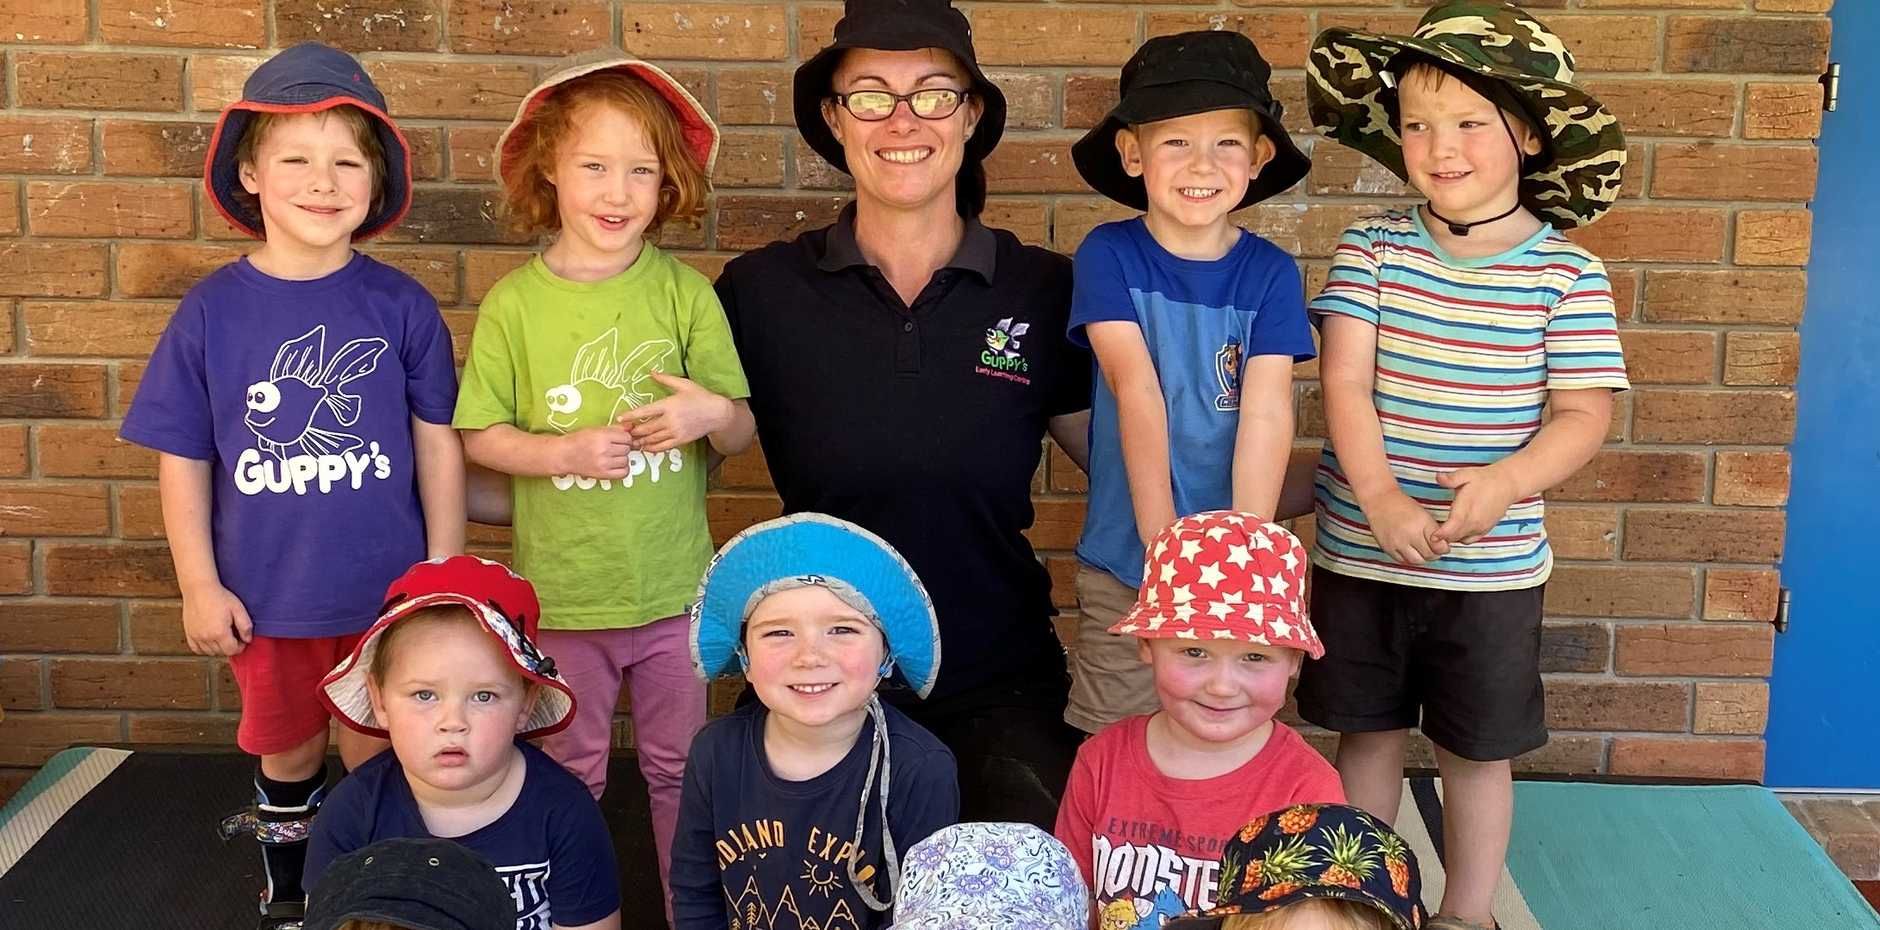 Nicole Martin with her Kindy kids from Blackbutt Guppy's Kindy.